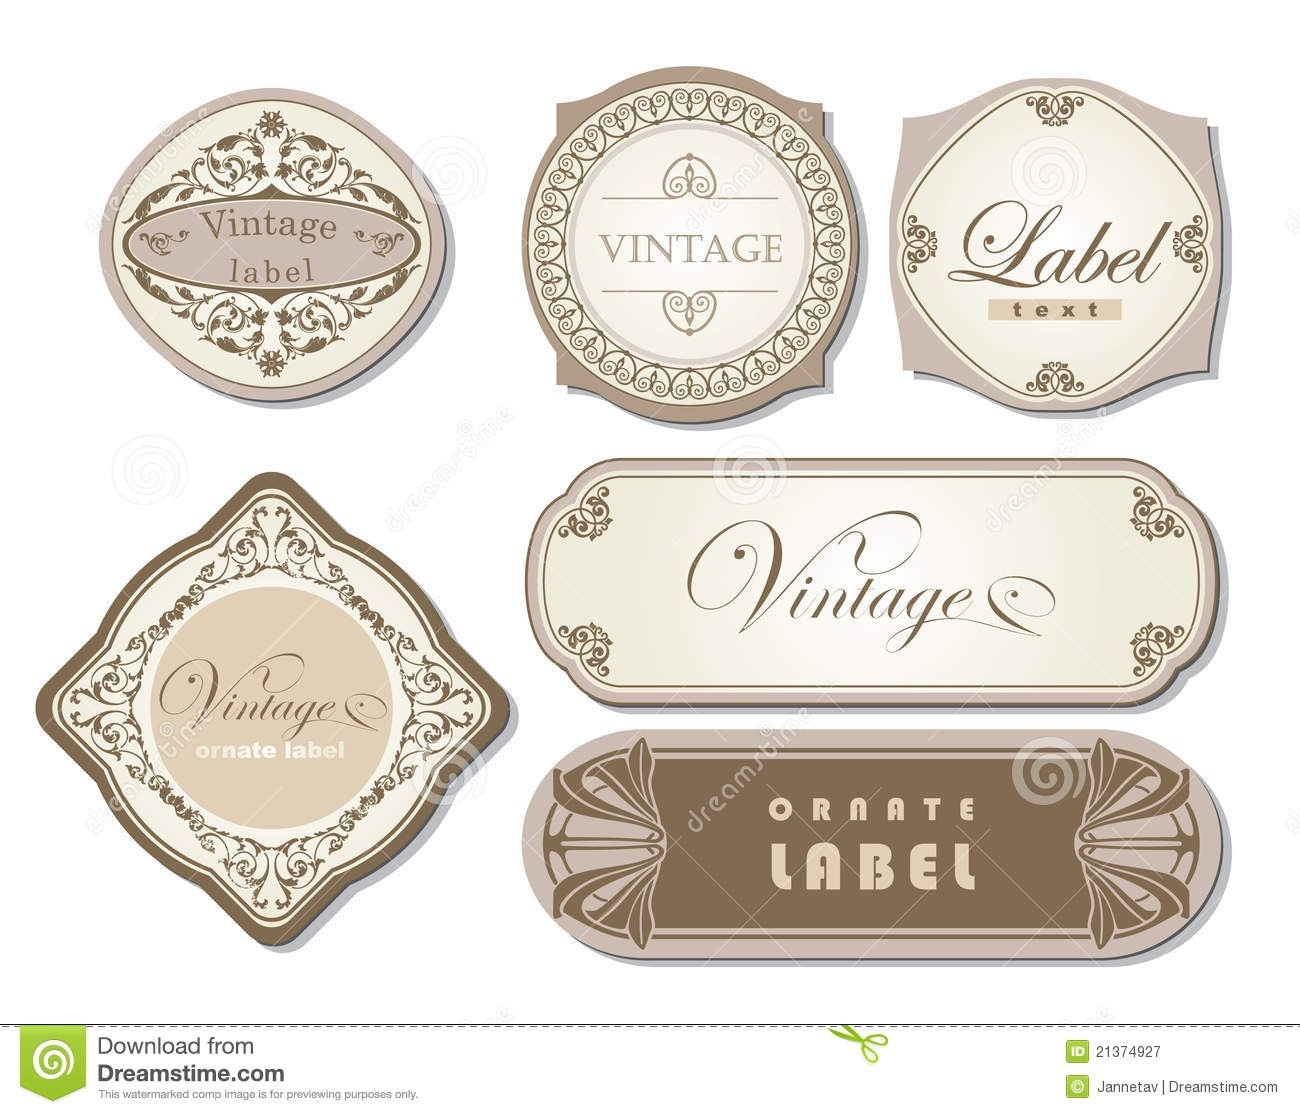 Candle Label Templates Free - Google Search | Templates pertaining to Vintage Label Free Download 29371